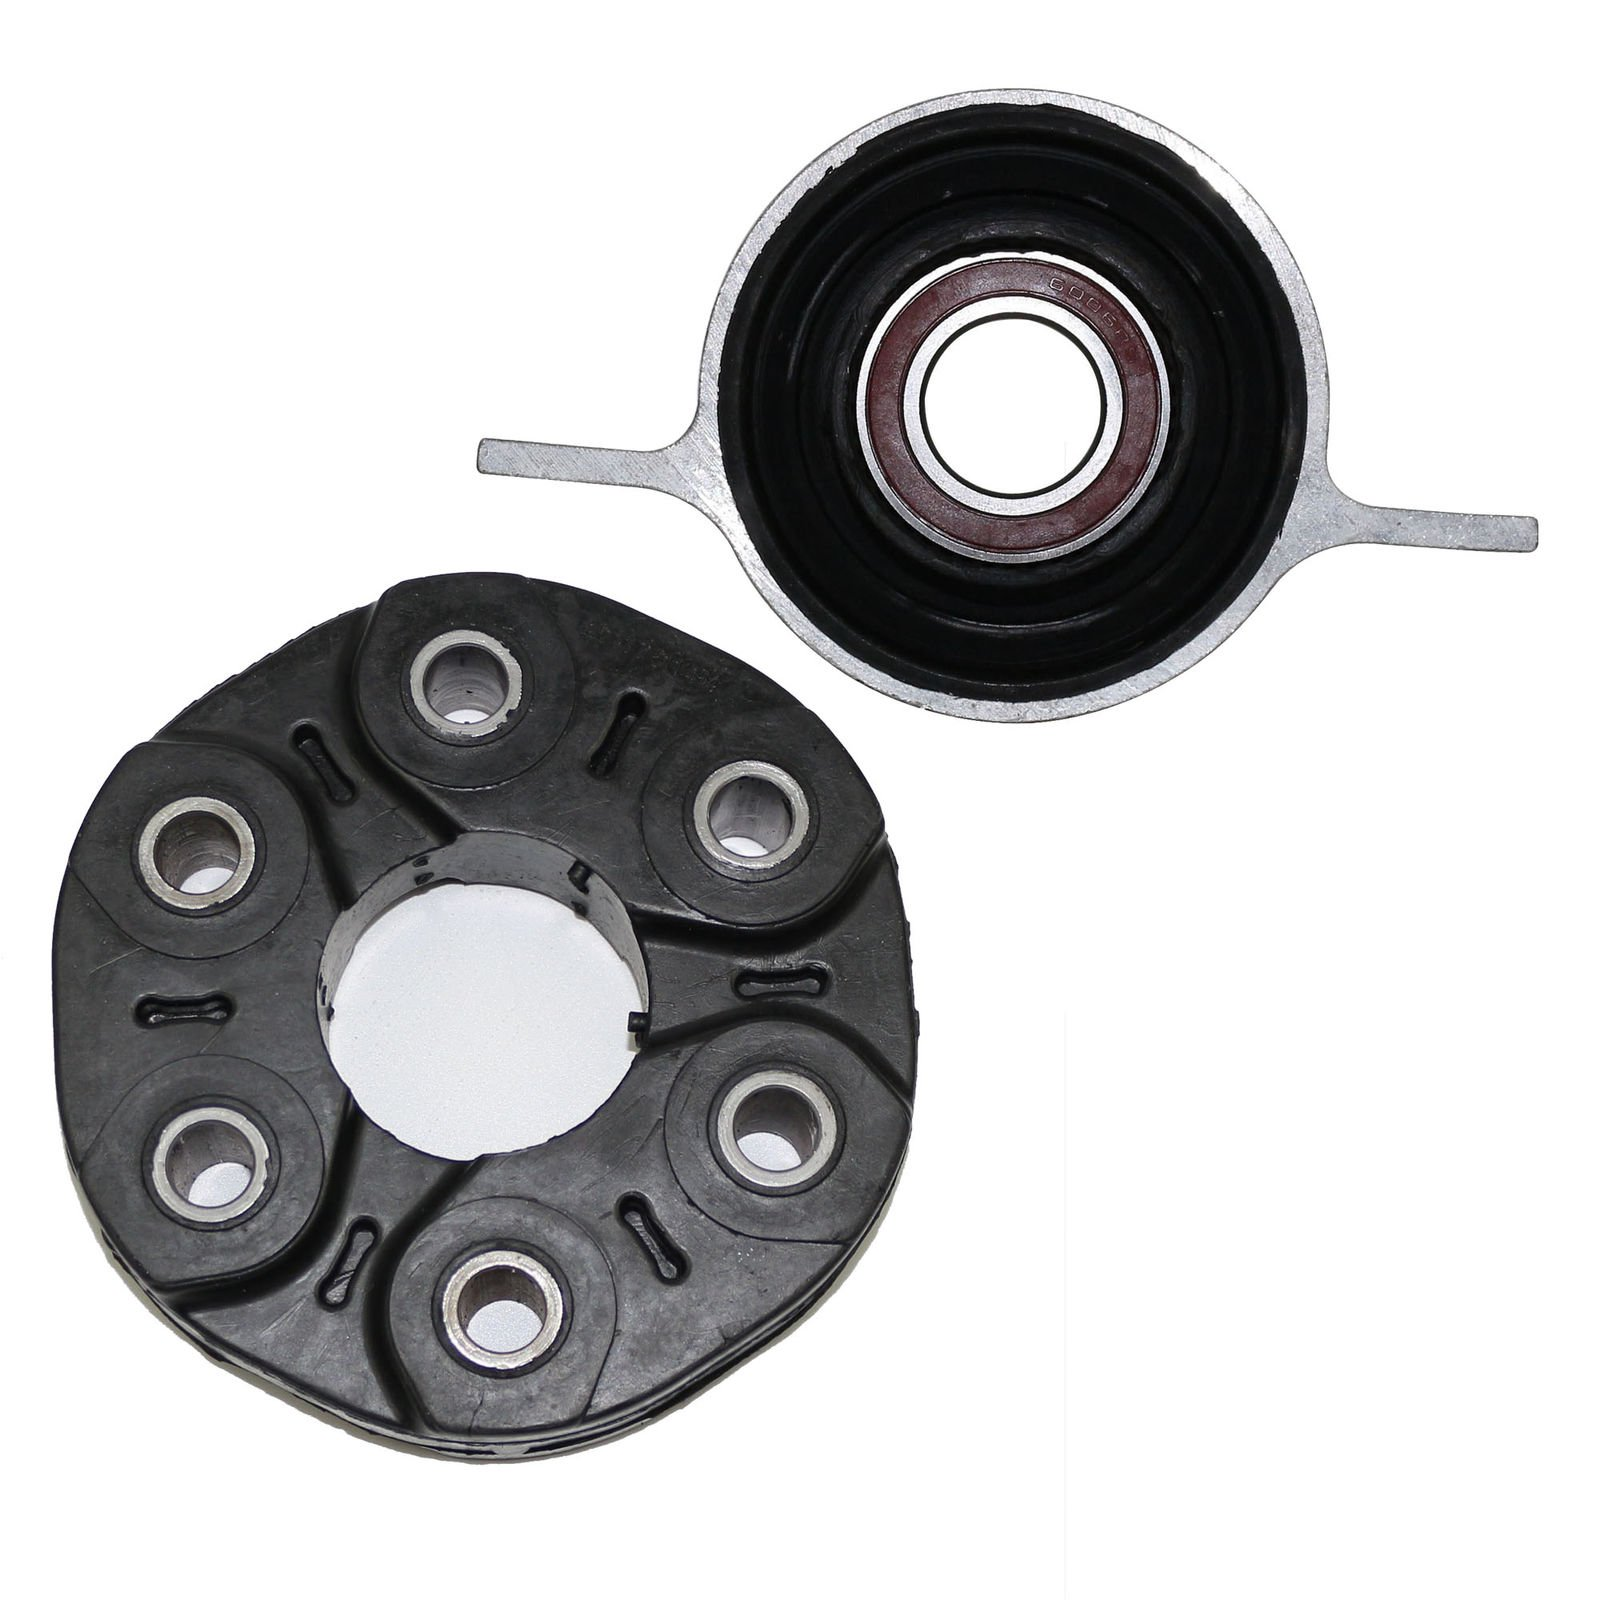 K KARL Drive Shaft Center Support Bearing & Flex Disc Joint Kit AFDDS343-296